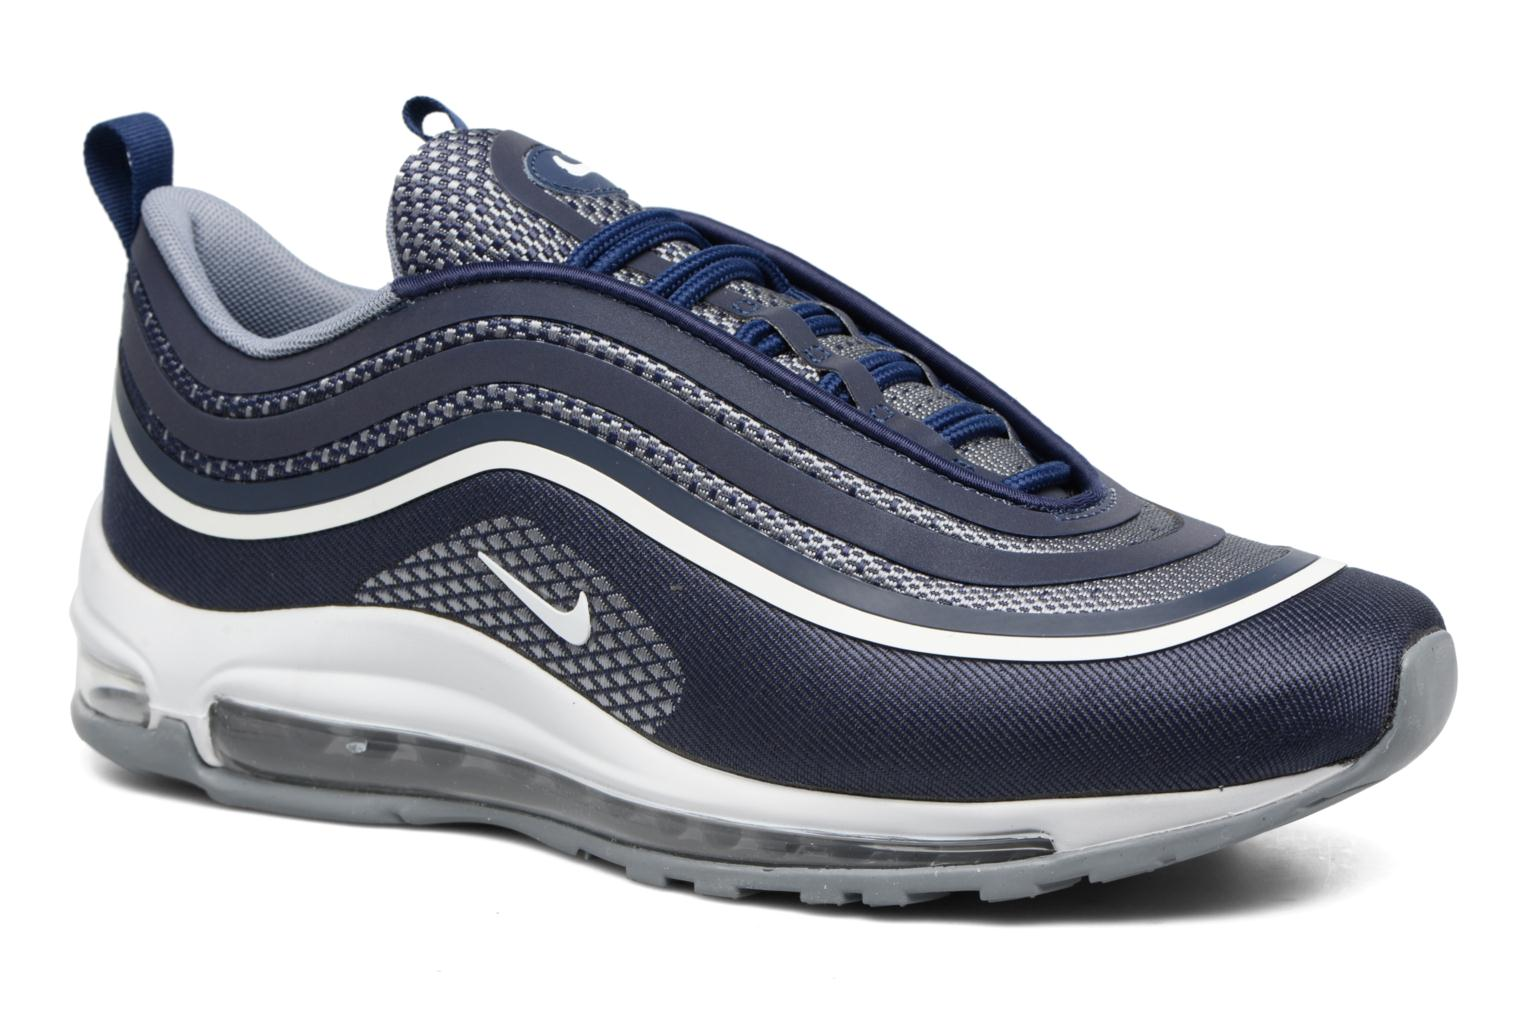 Air Max 97 Ul '17 Midnight Navy/White-Cool Grey